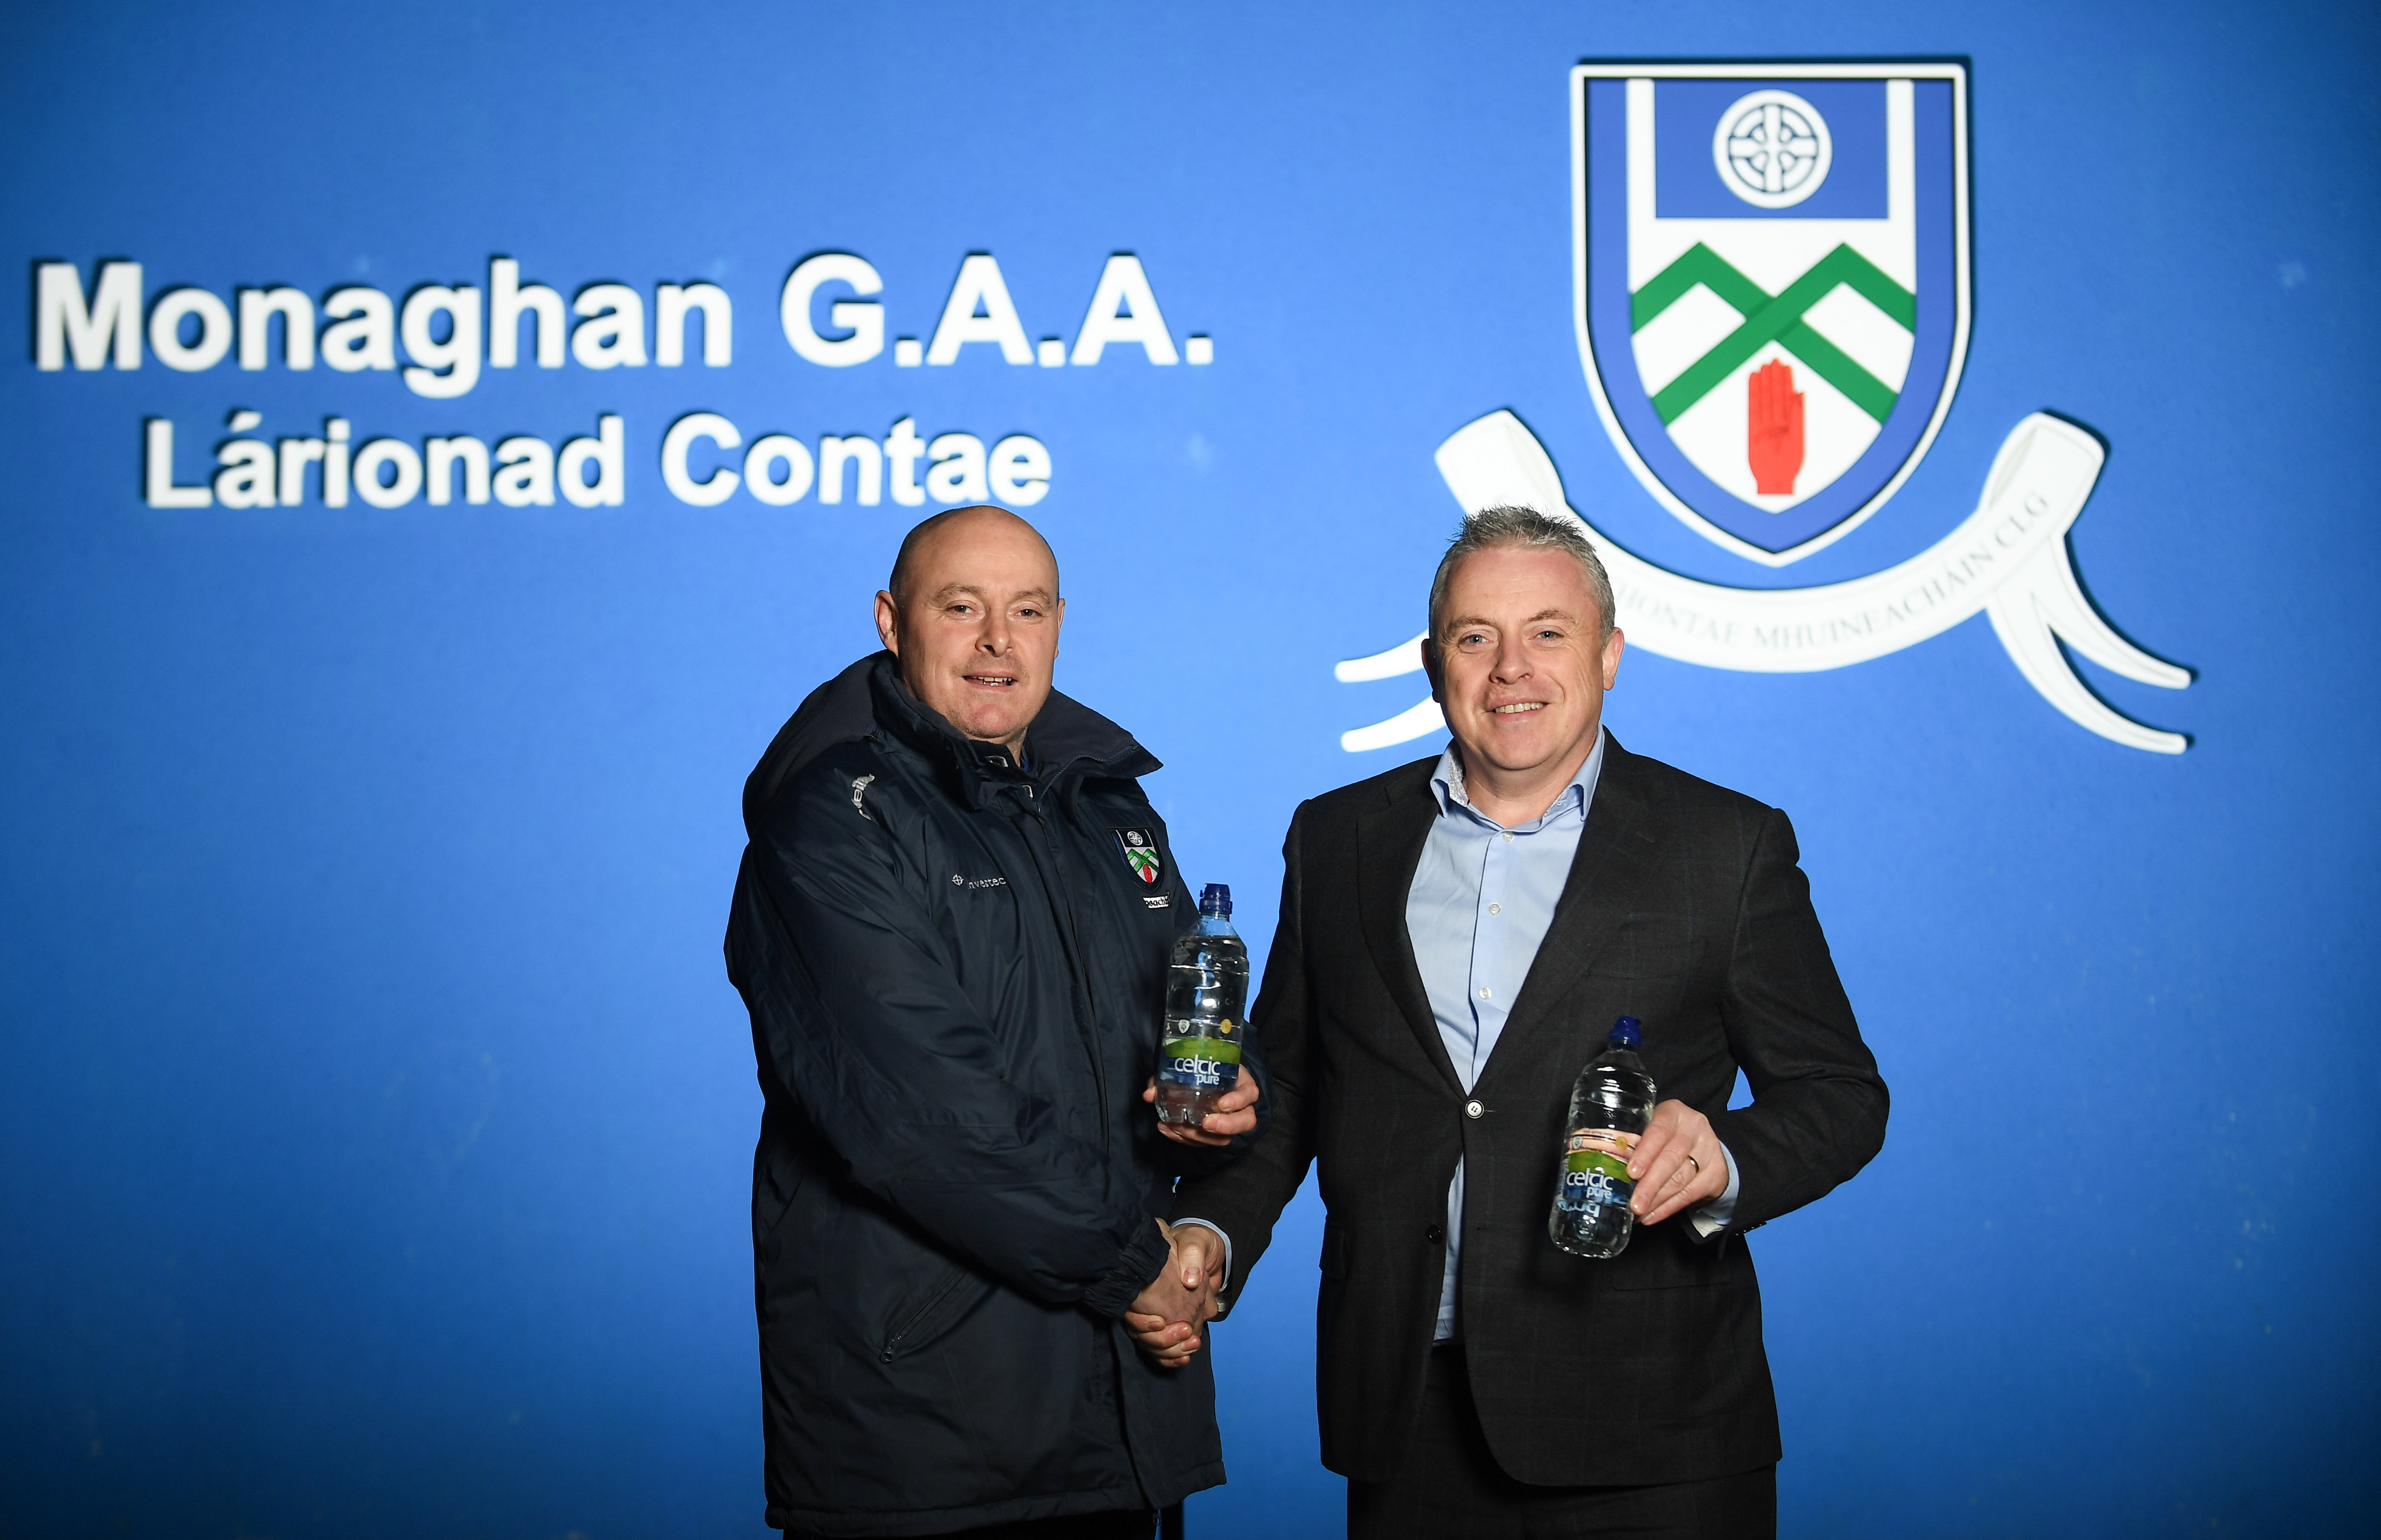 Celtic Pure Springs to Action with Monaghan GAA